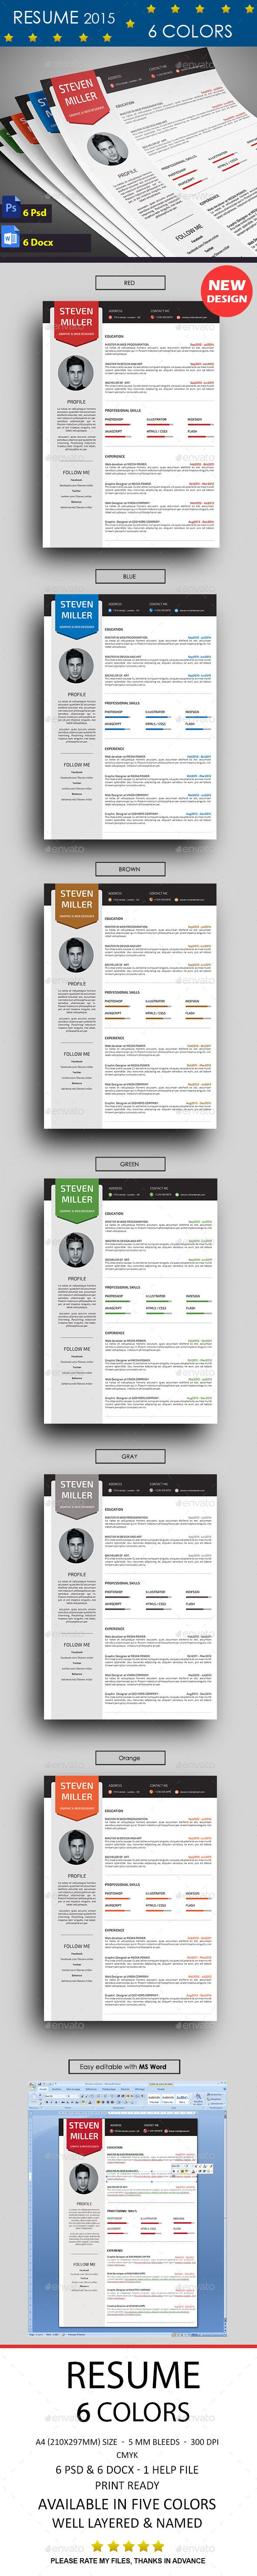 Resume | Template, Resume cv and Cv template